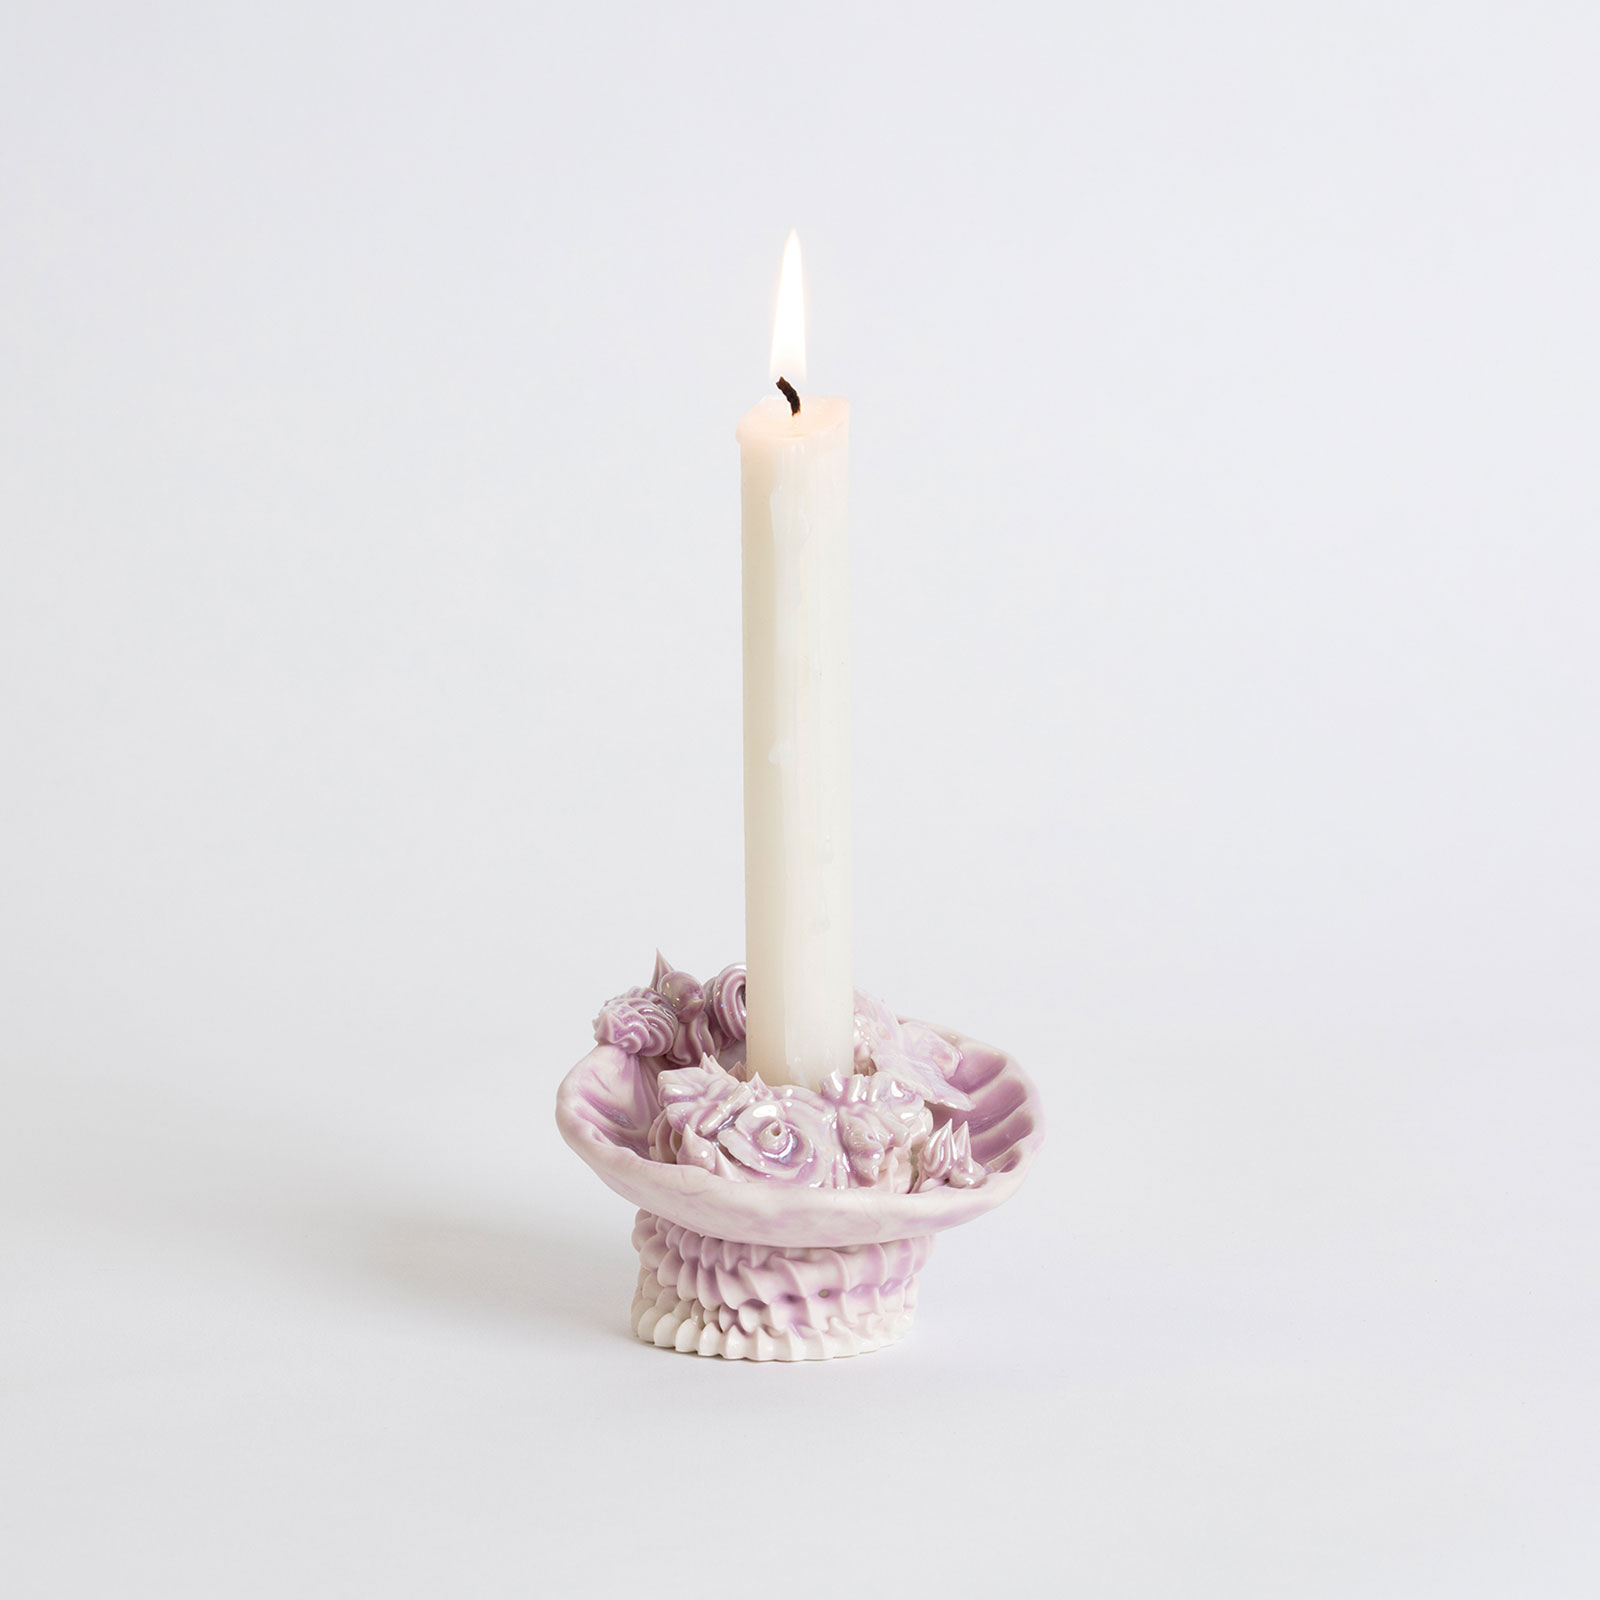 Artificial Kingdom Candleholder In Porcelain With Glaze And Lilac Lustre By Ebony Russell Hero